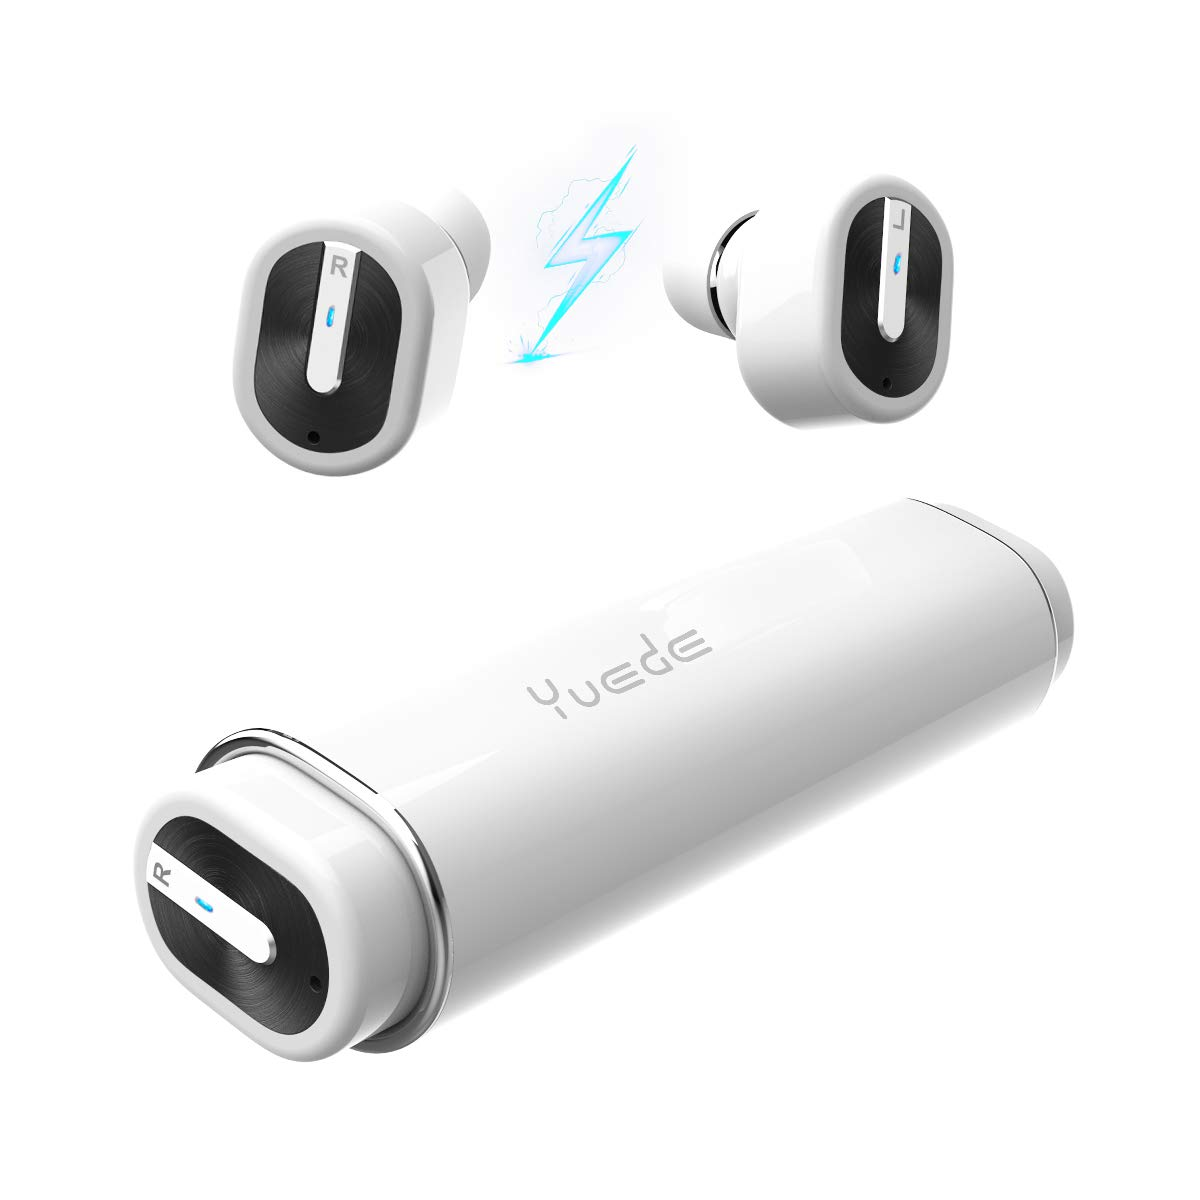 Wireless Bluetooth Earbuds Earphones, CORNMI Sports Earphones Bluetooth 5.0, Sweatproof Wireless Headphones with 440mAh Portable Charging Case for Gym Running Christmas Birthday Gifts-White